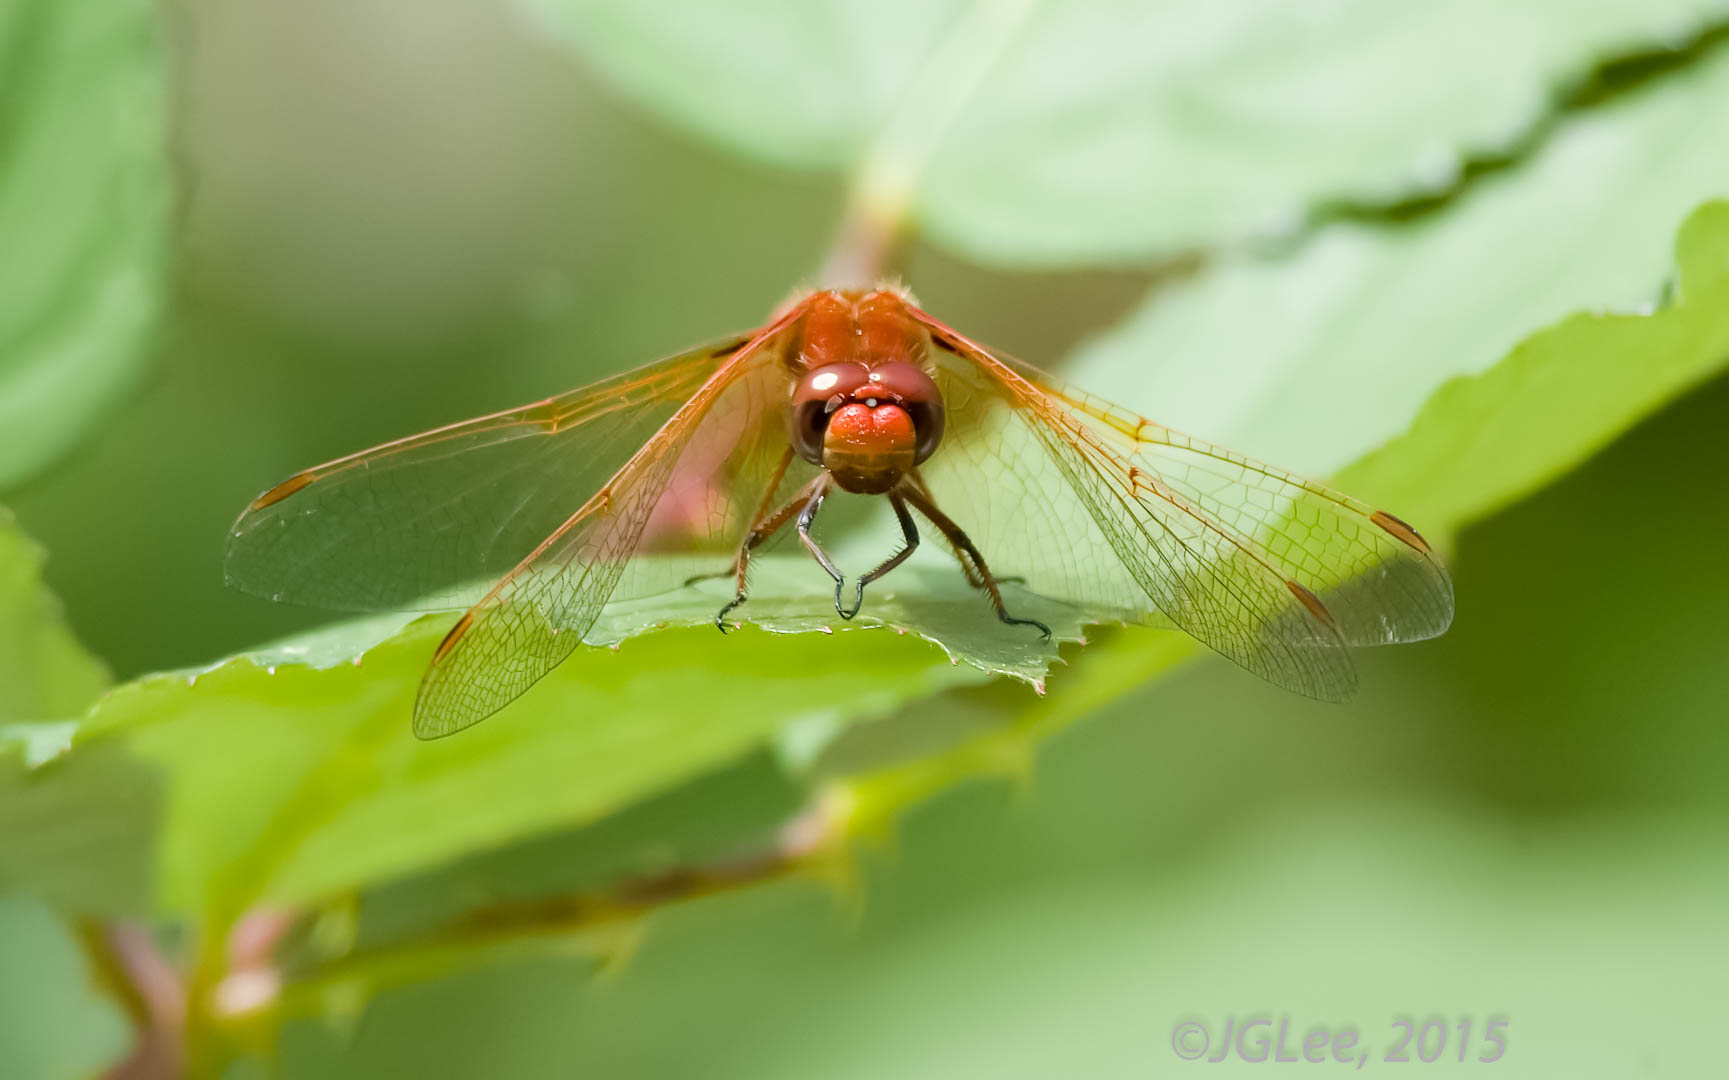 Face of the Dragonfly